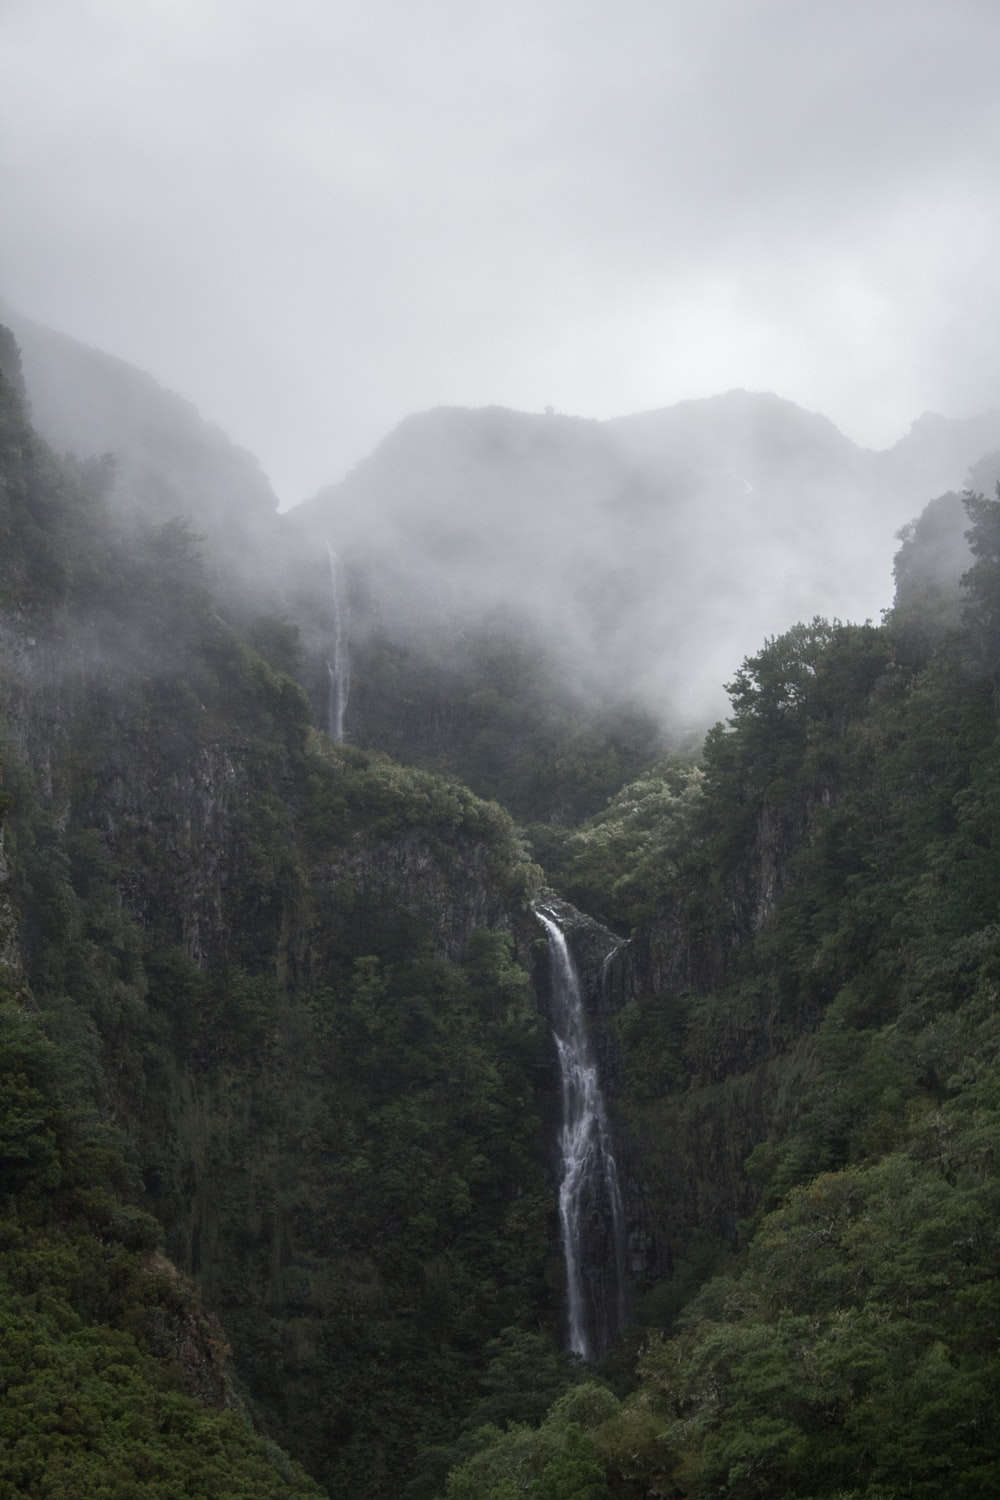 waterfalls in foggy weather during daytime